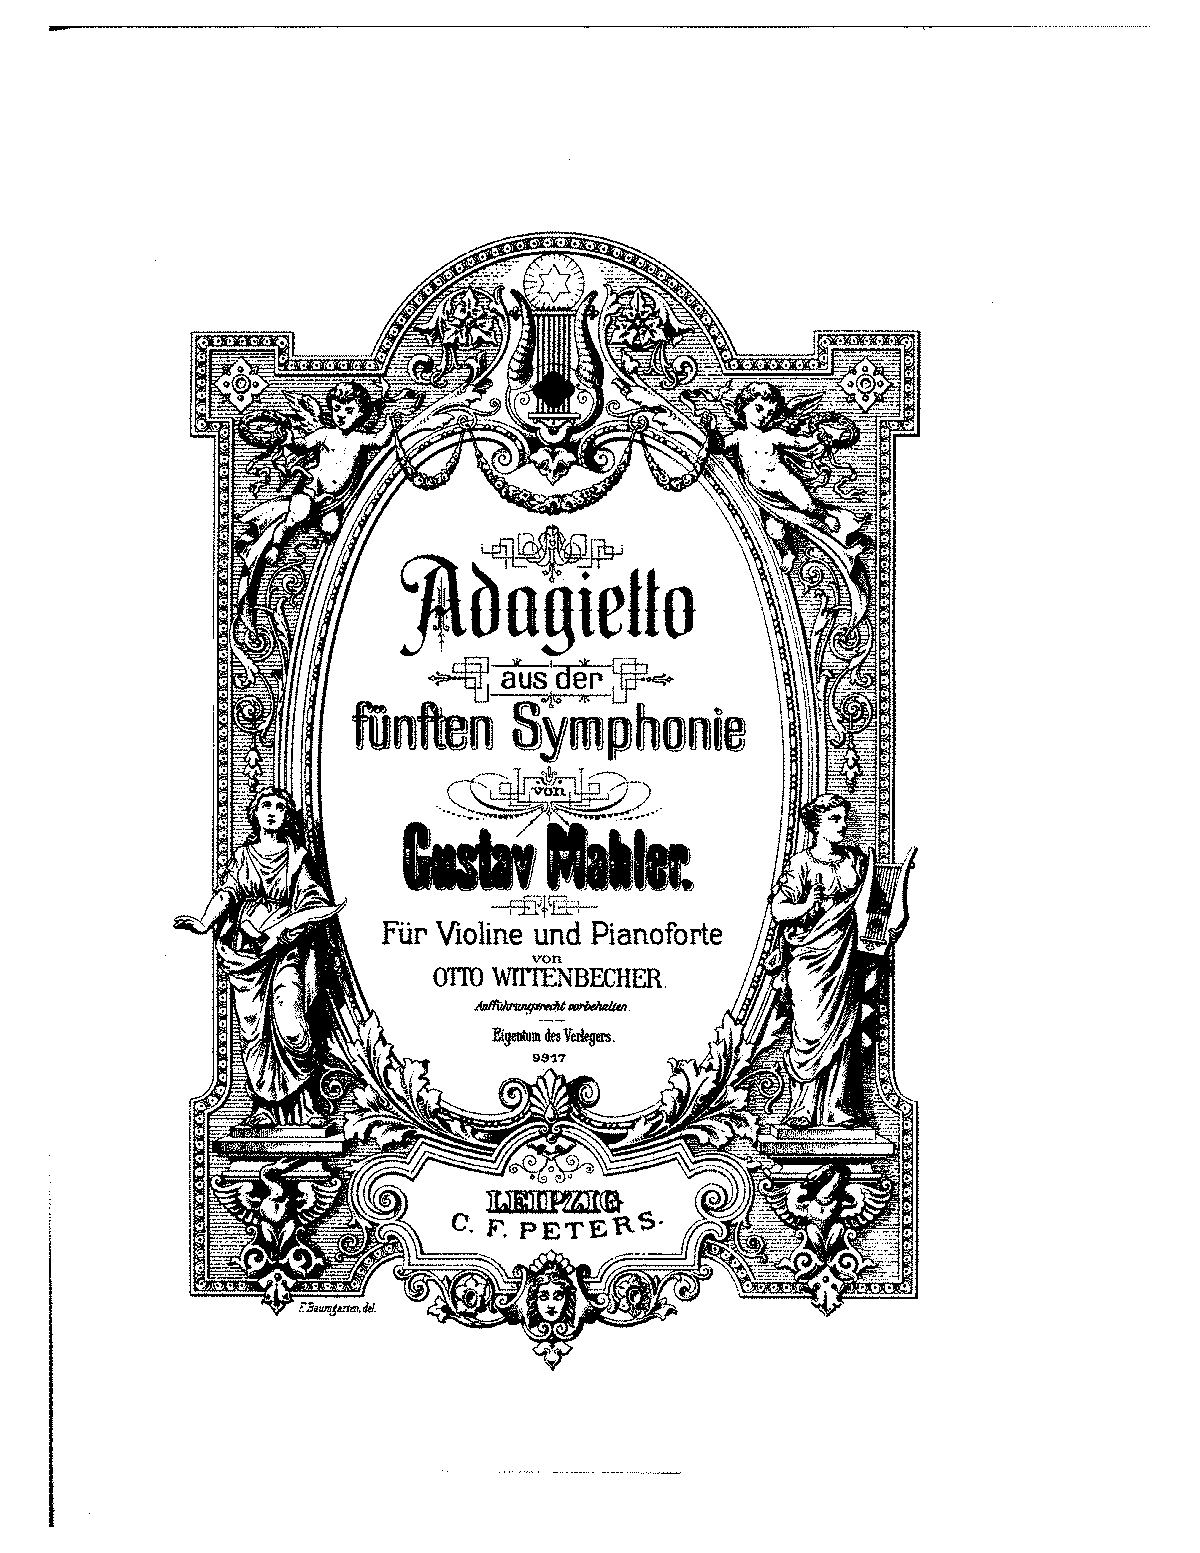 Mahler Adagietto for violin and piano.pdf